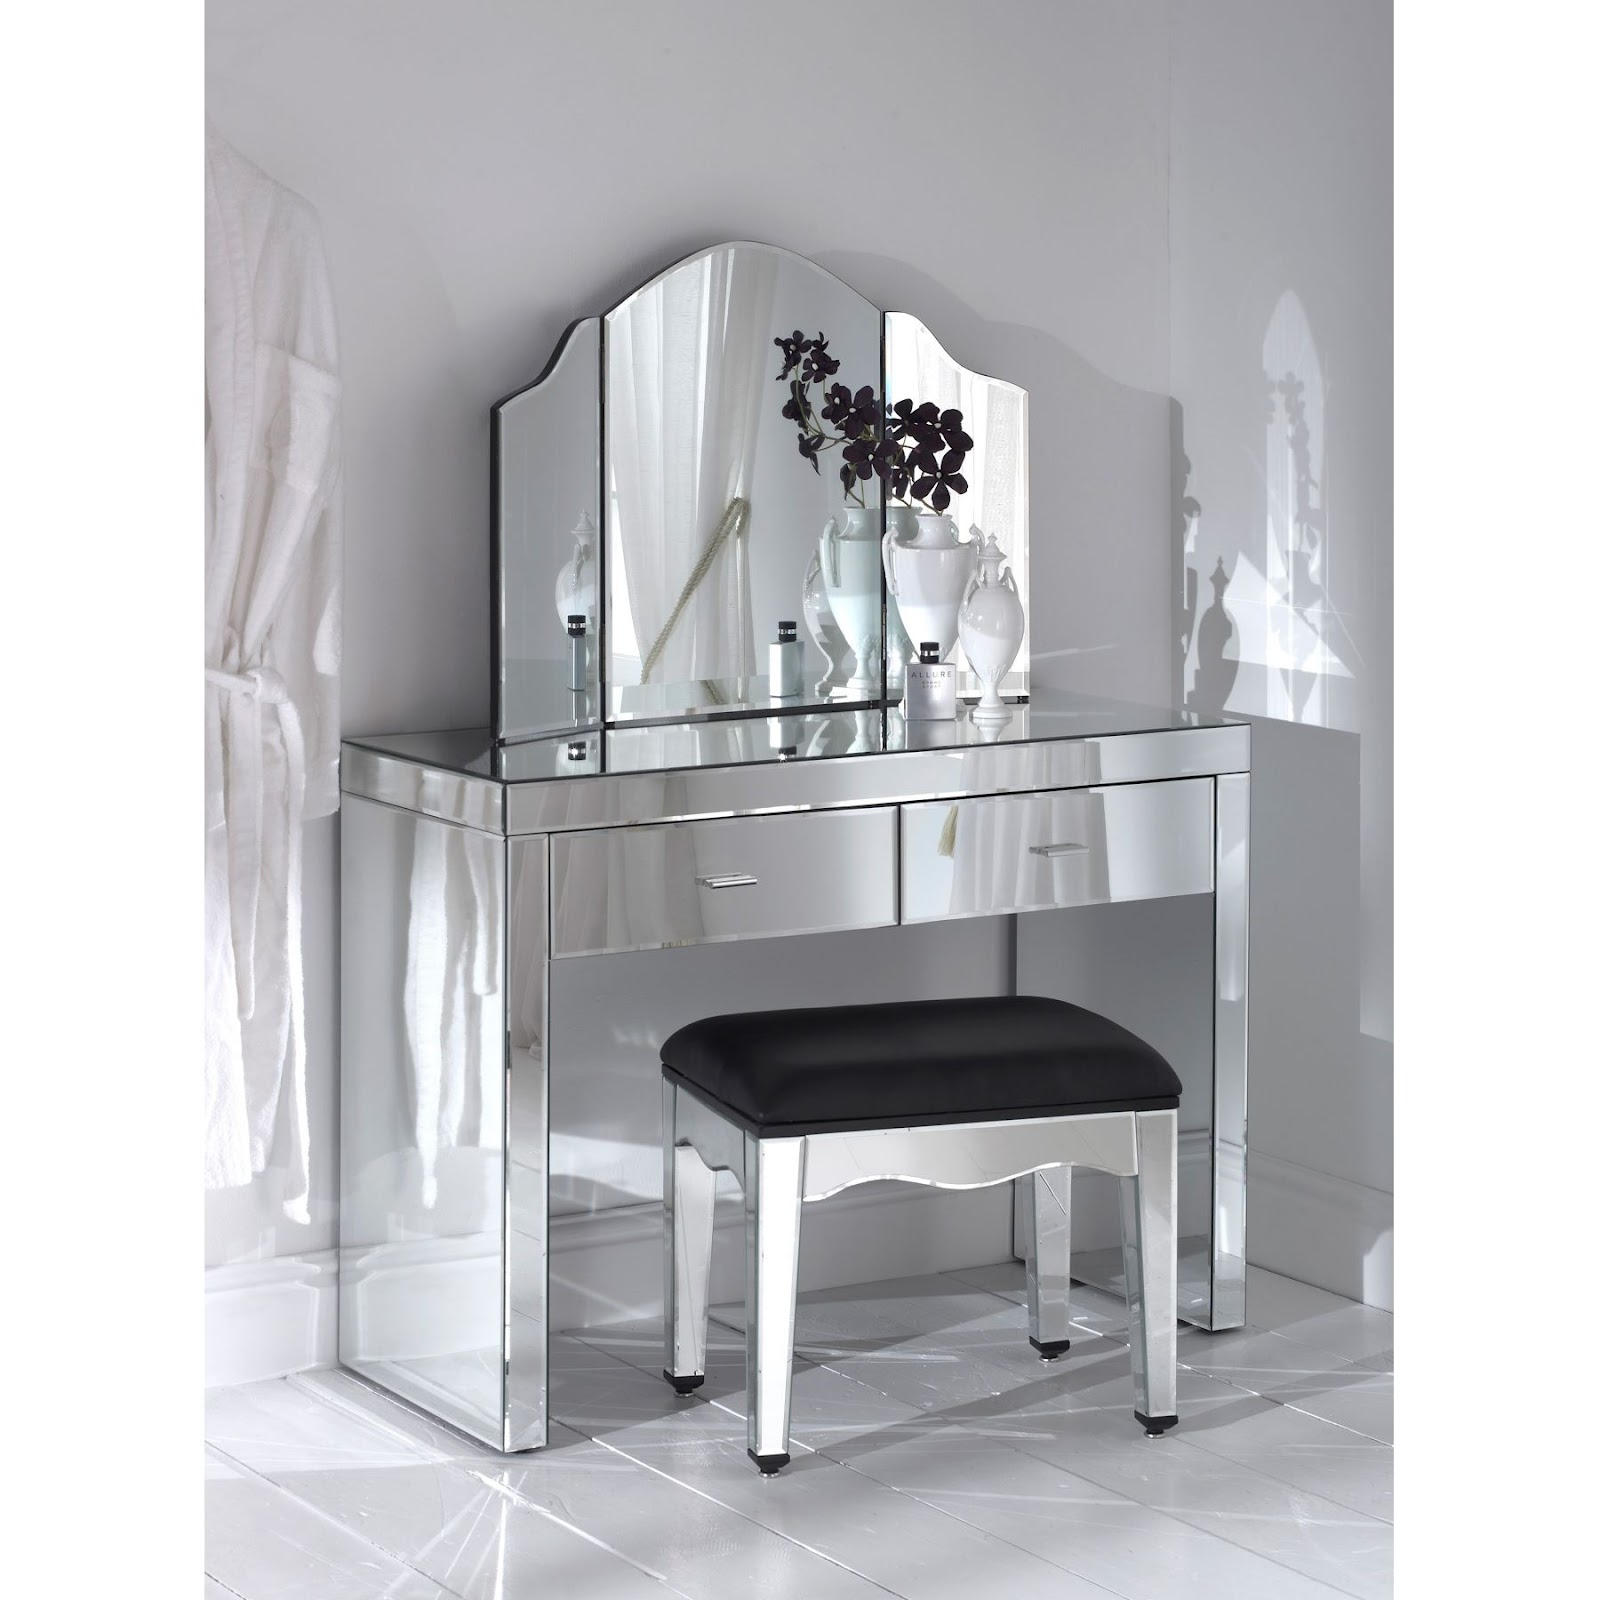 Modern dressing table furniture designs an interior design - New furniture design ...